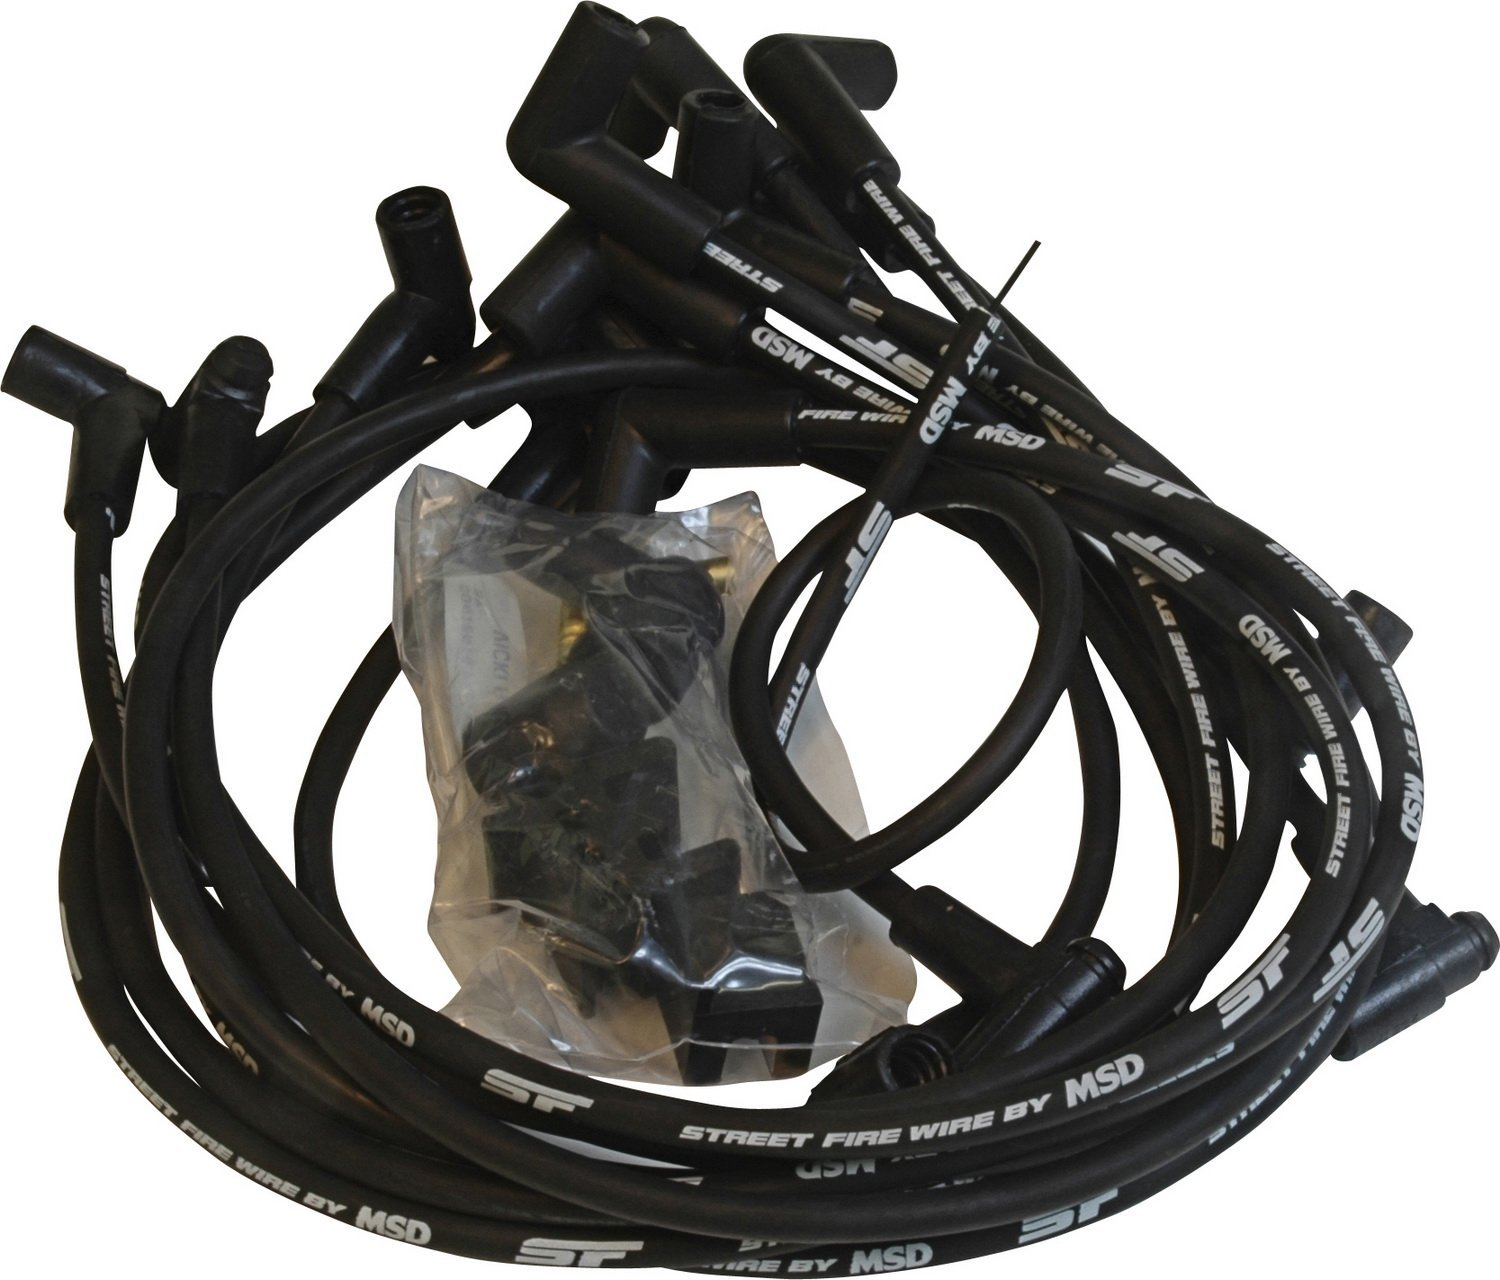 5554 Street Fire Spark Plug Wire Set, Helically wound conductor ...